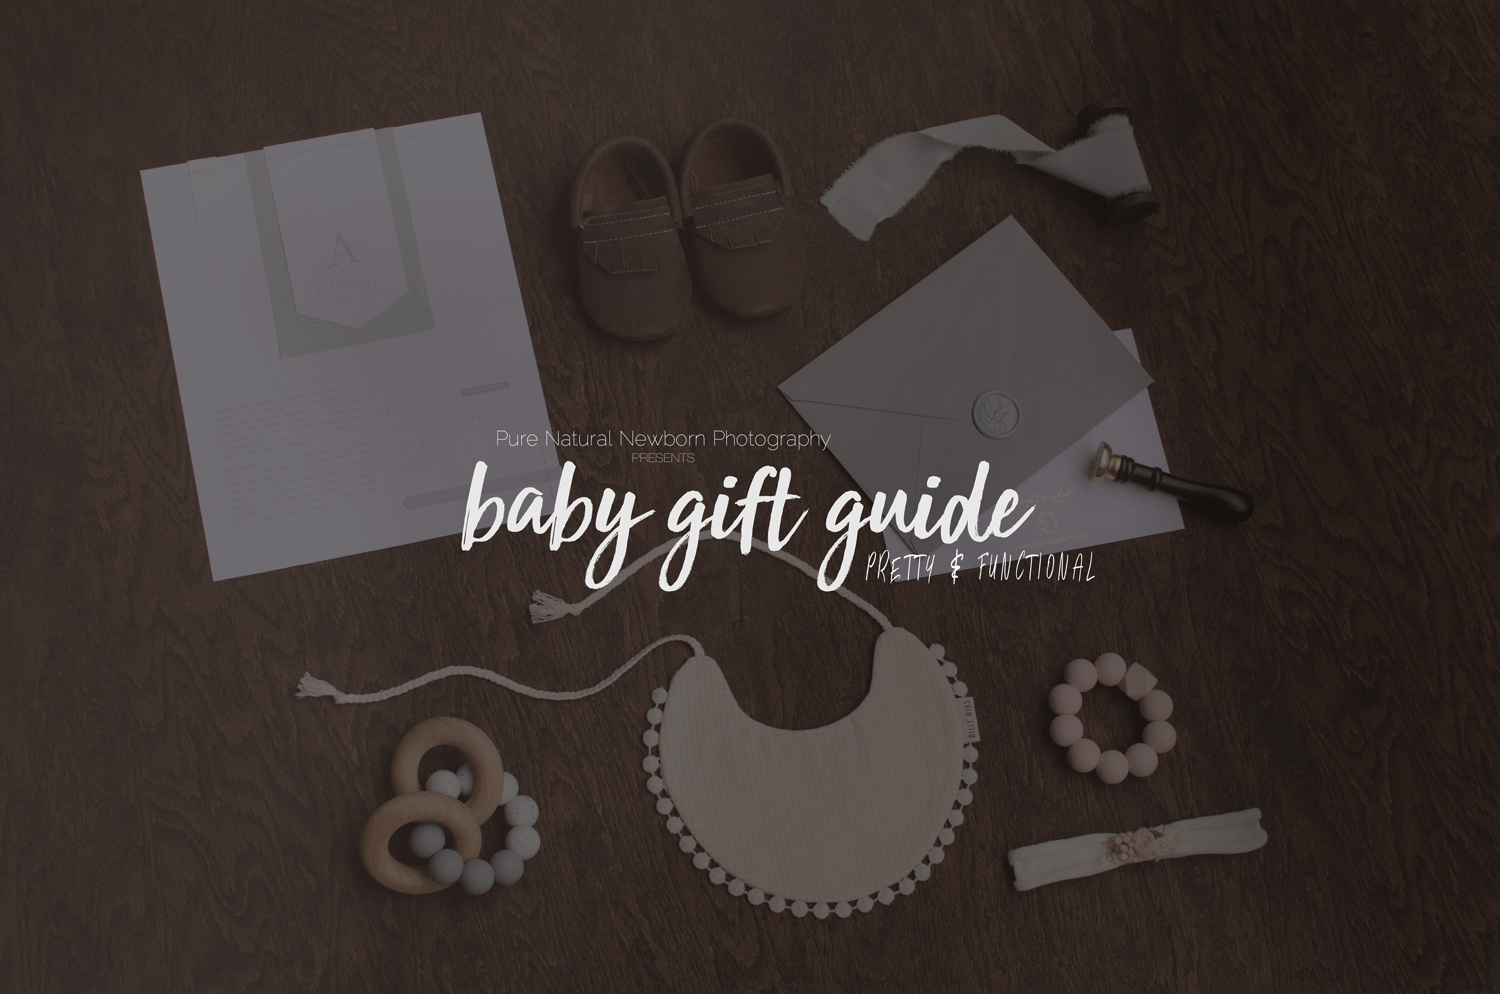 The 2017 Baby Gift Guide - handmade, canadian, pretty and functional gifts. Great for a baby shower! | Pure Natural Newborn Photography, Ottawa